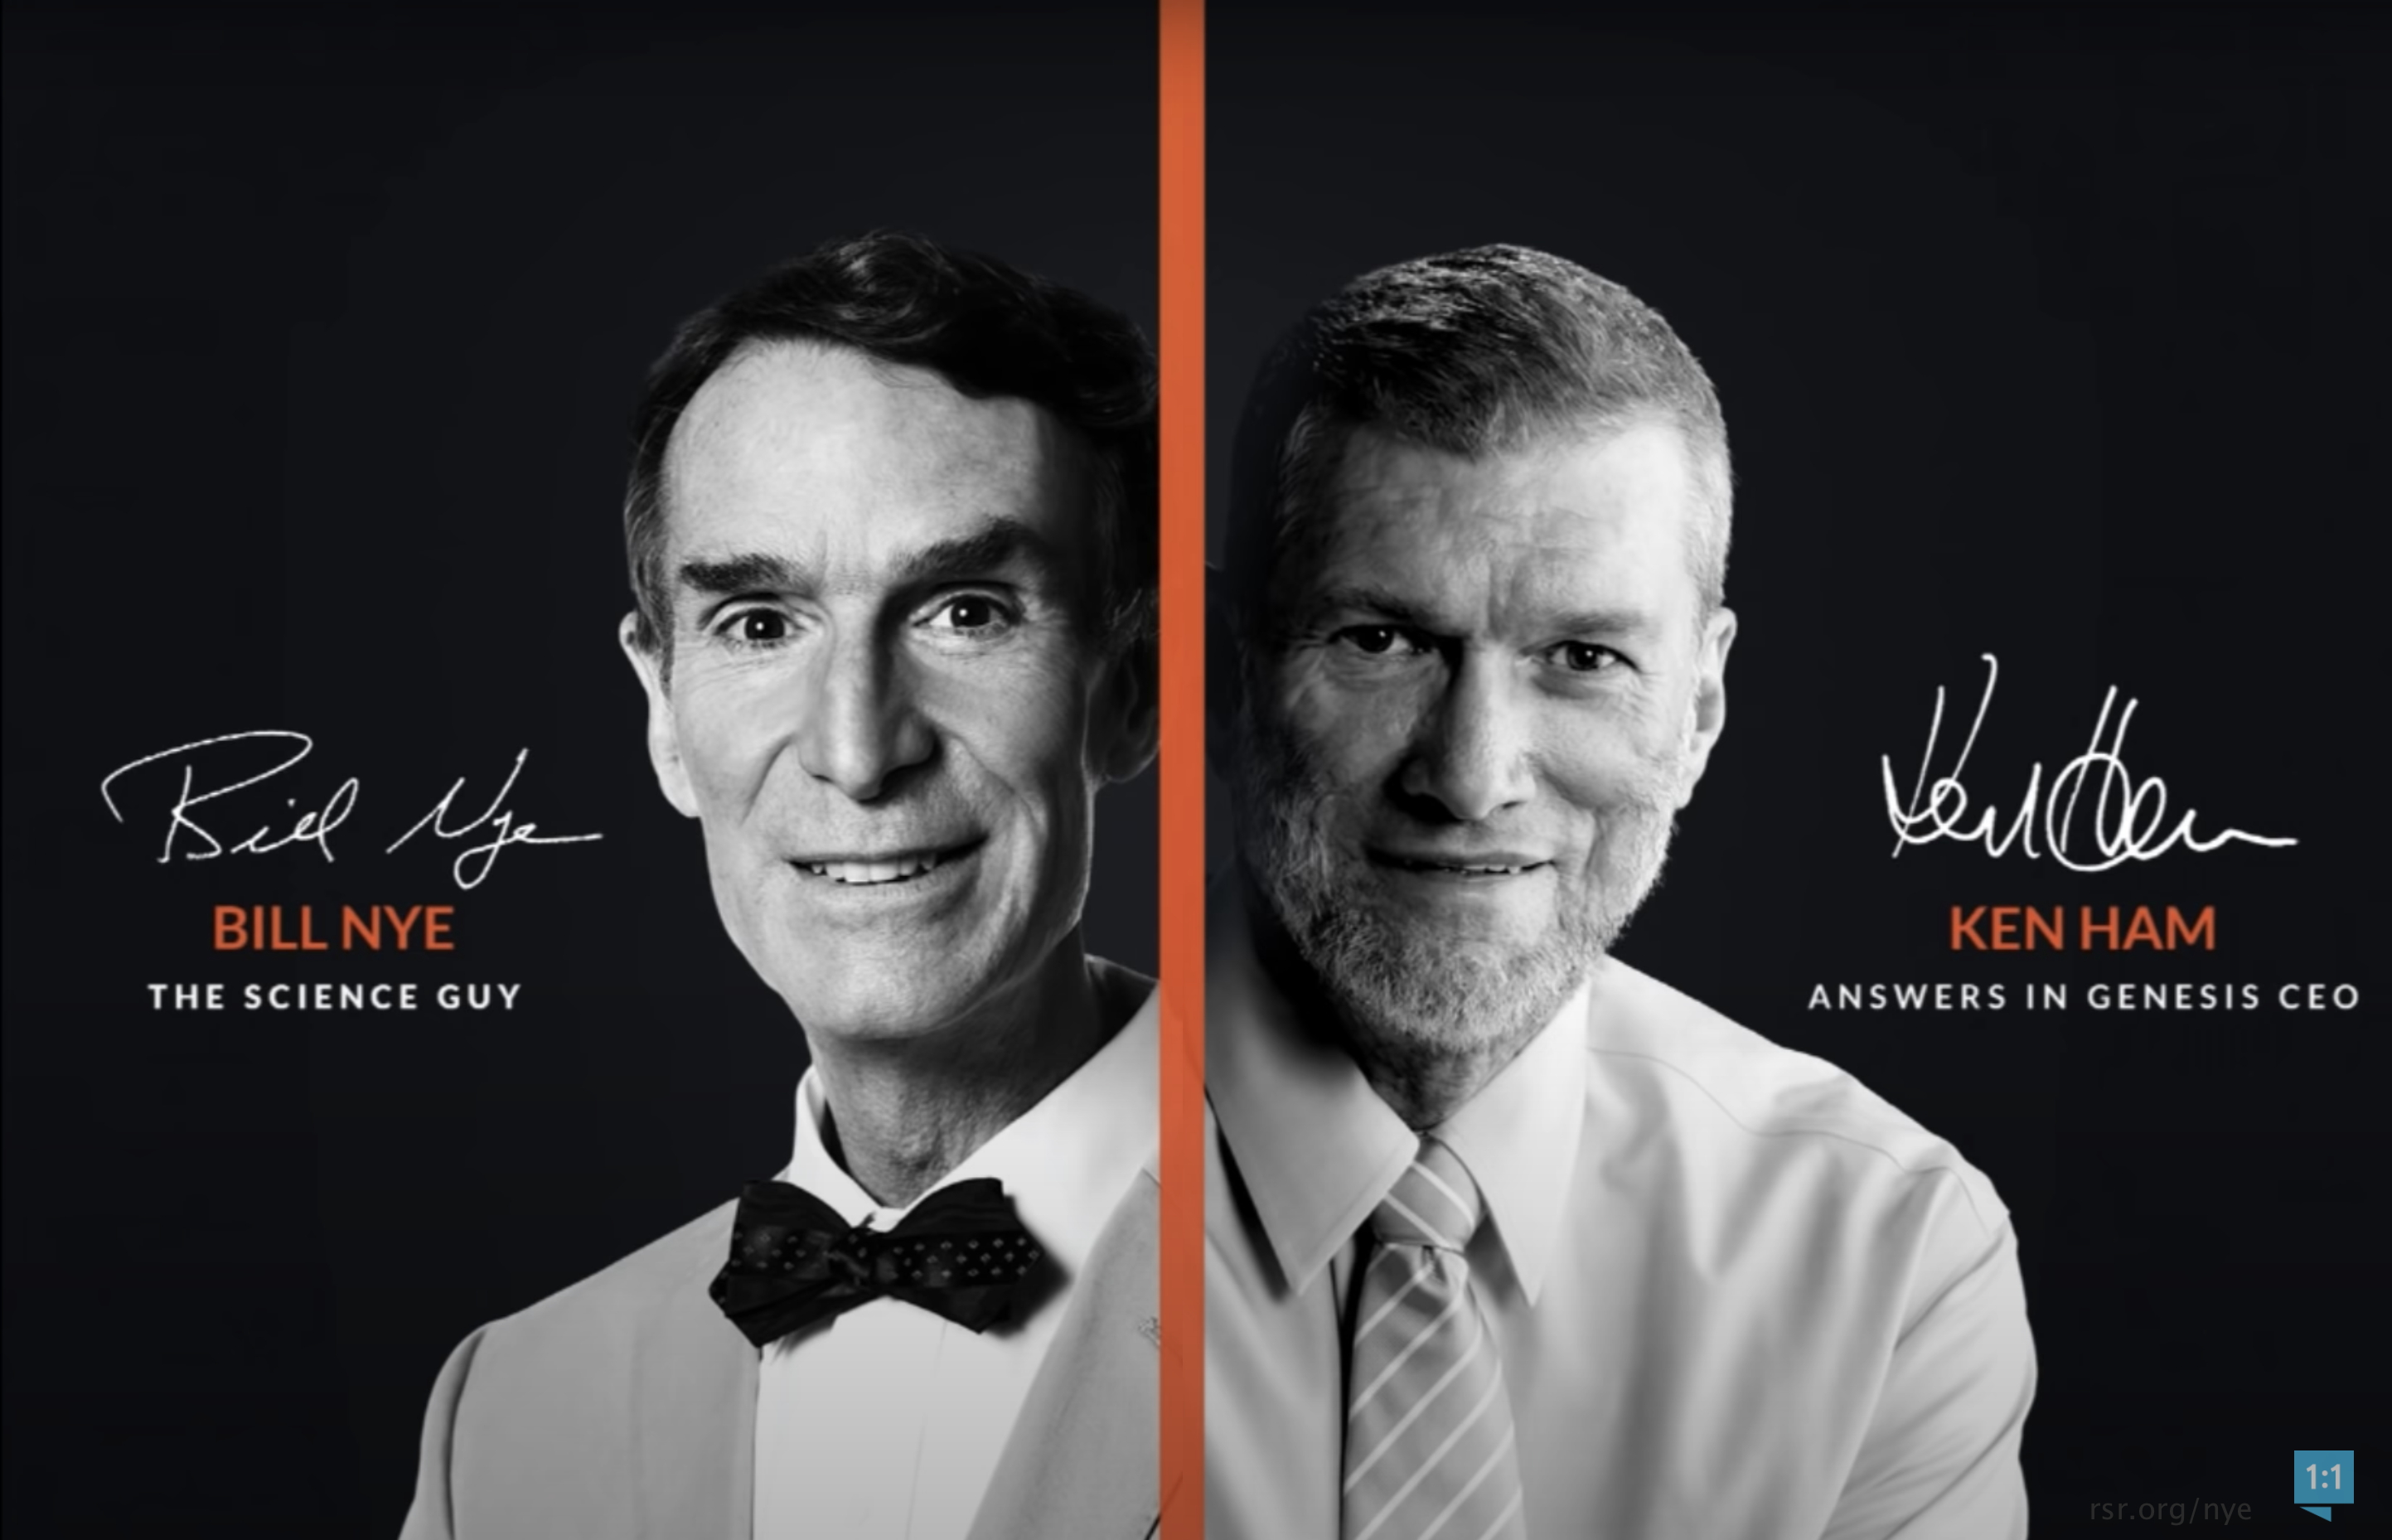 Ken Ham vs. Bill Nye debate